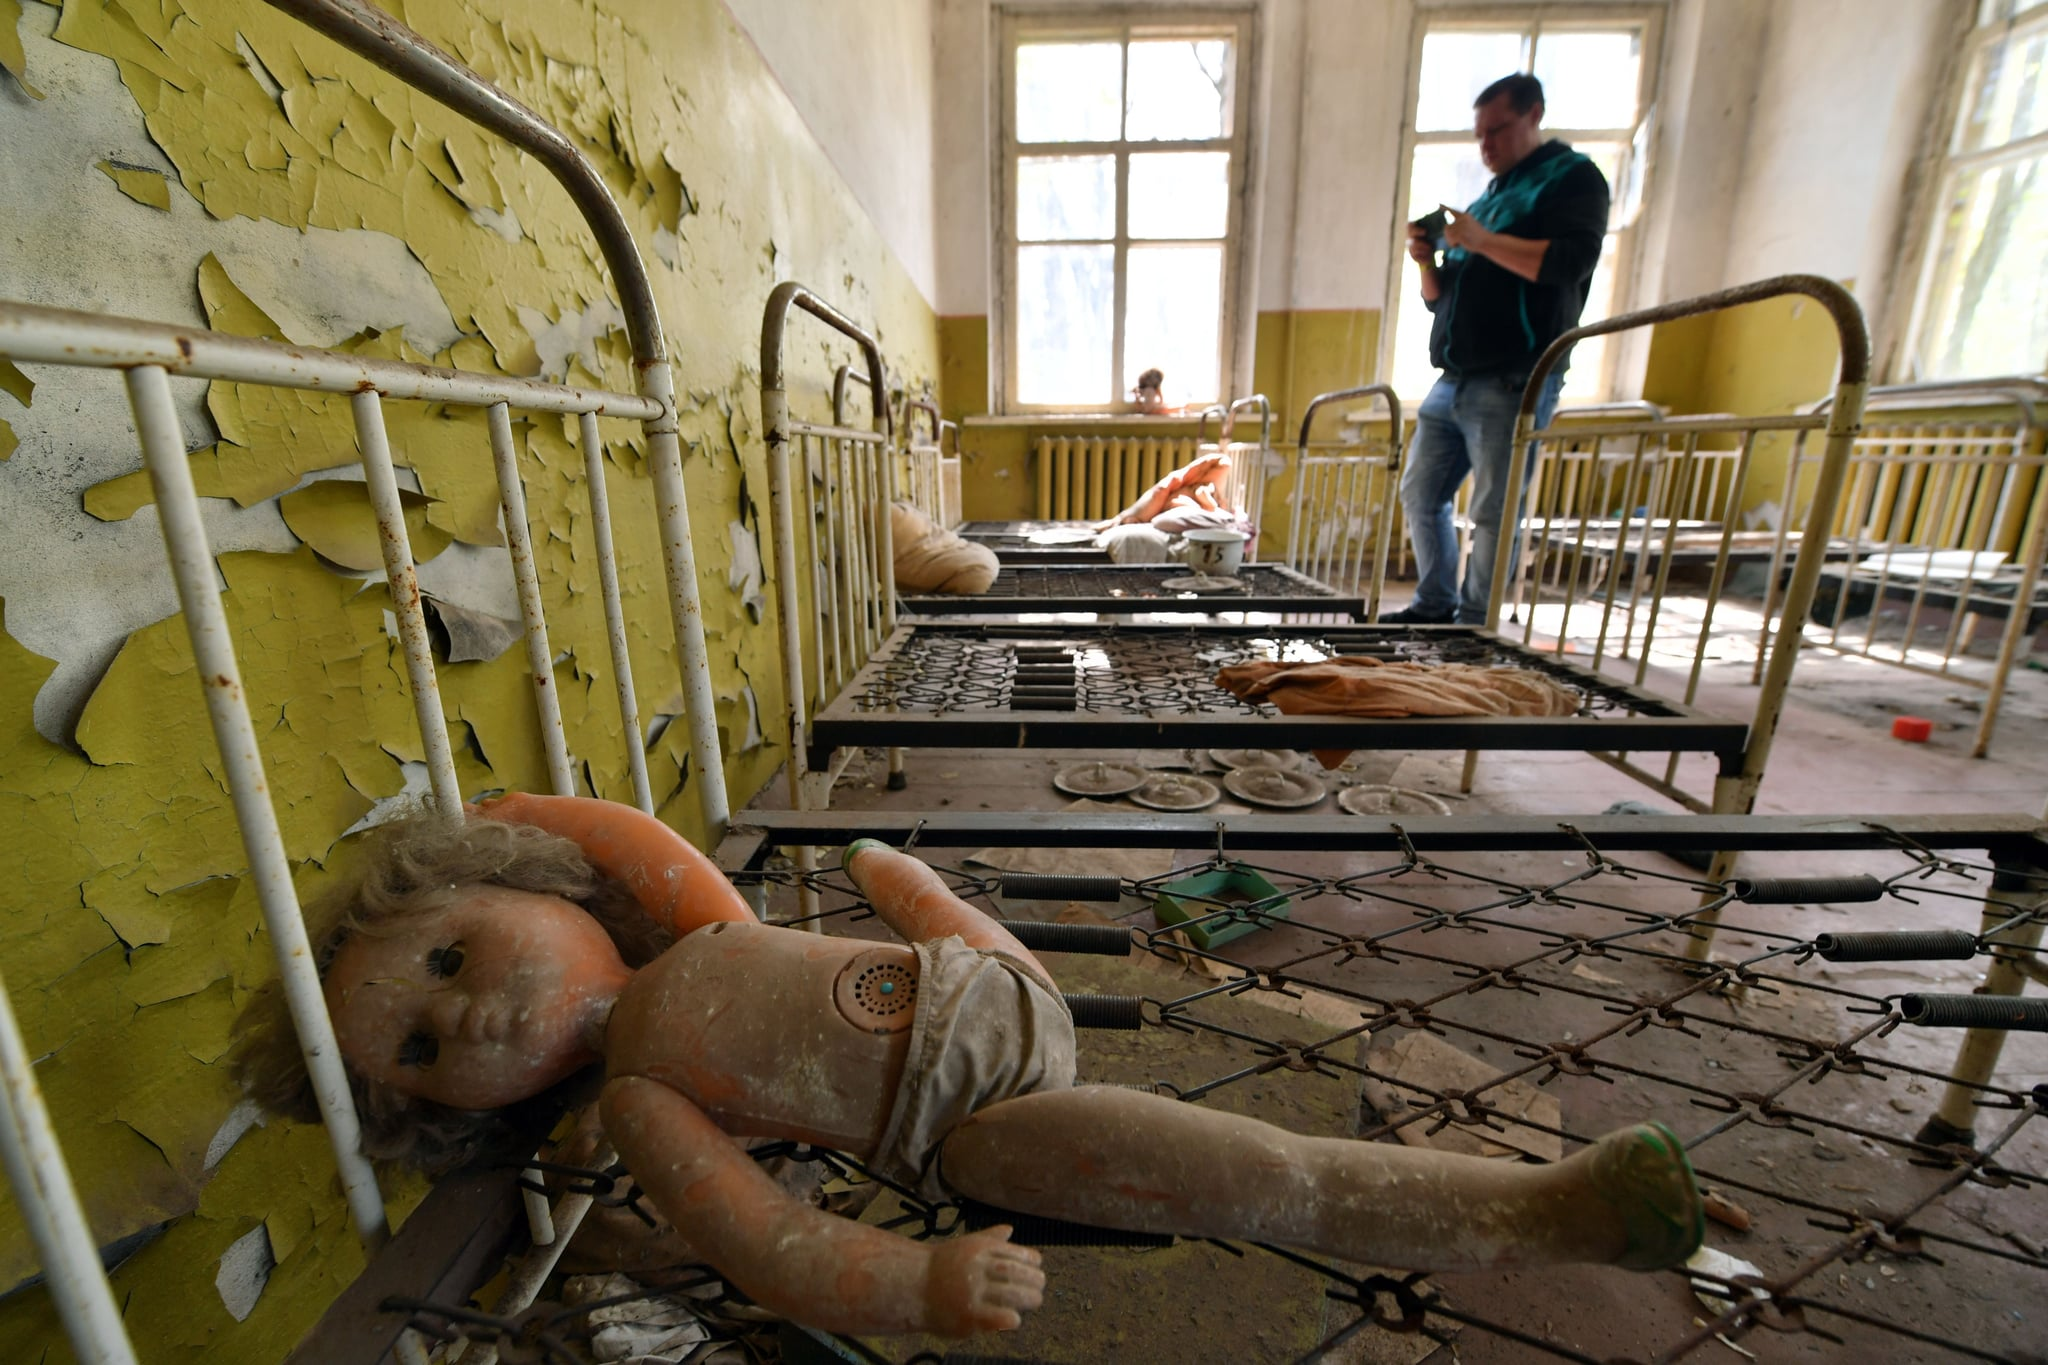 tmp vpGKSW fd6524661c4e5a3f GettyImages 950648478 - Hbo Kindergarten Where Are They Now